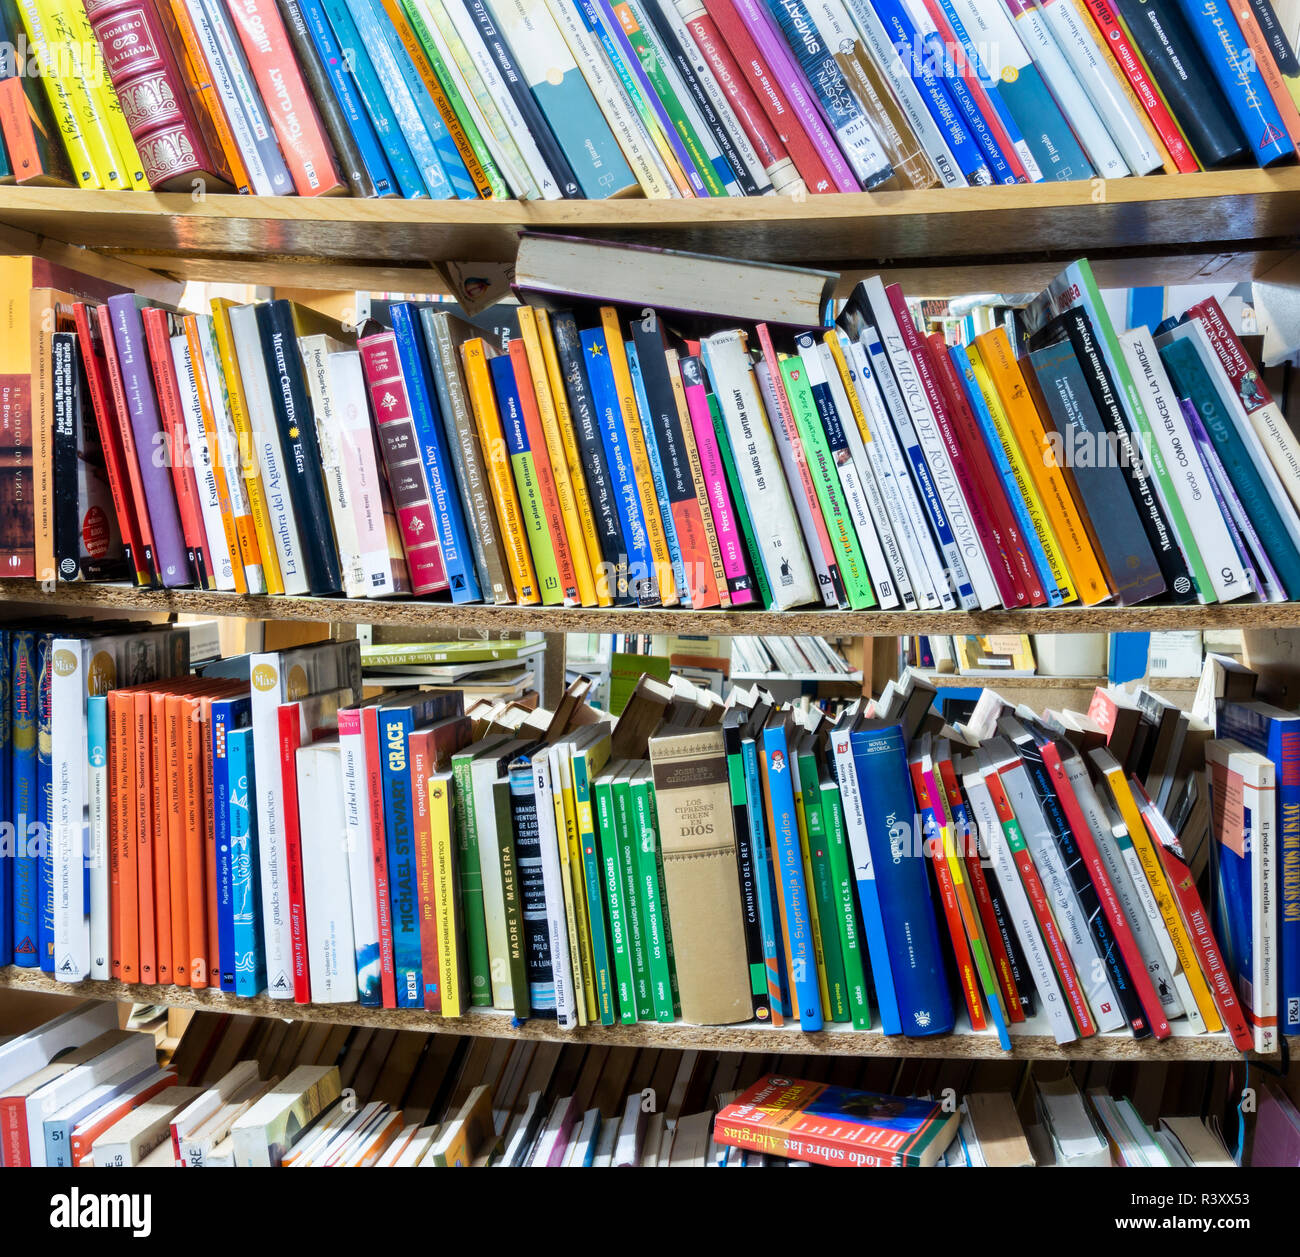 secondhand books in charity shop - Stock Image